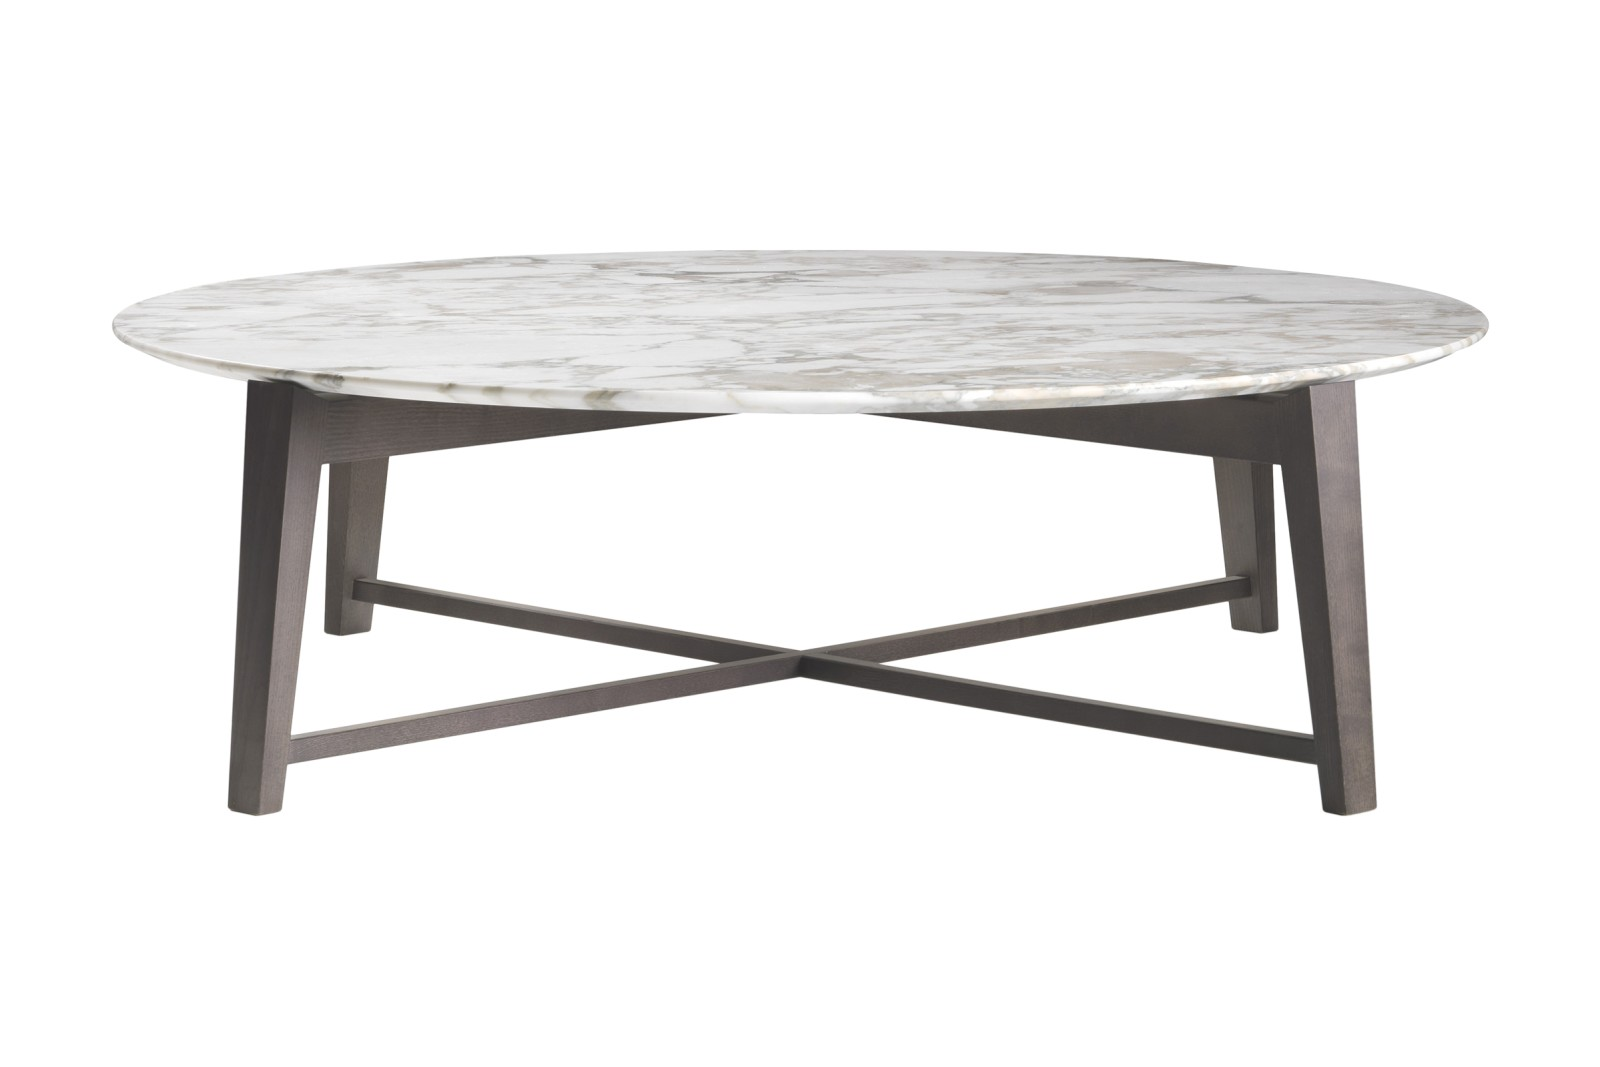 Tris Coffee Table Wood Finishes Ashwood Stained Coffee, Marble Carrara, Low, 127